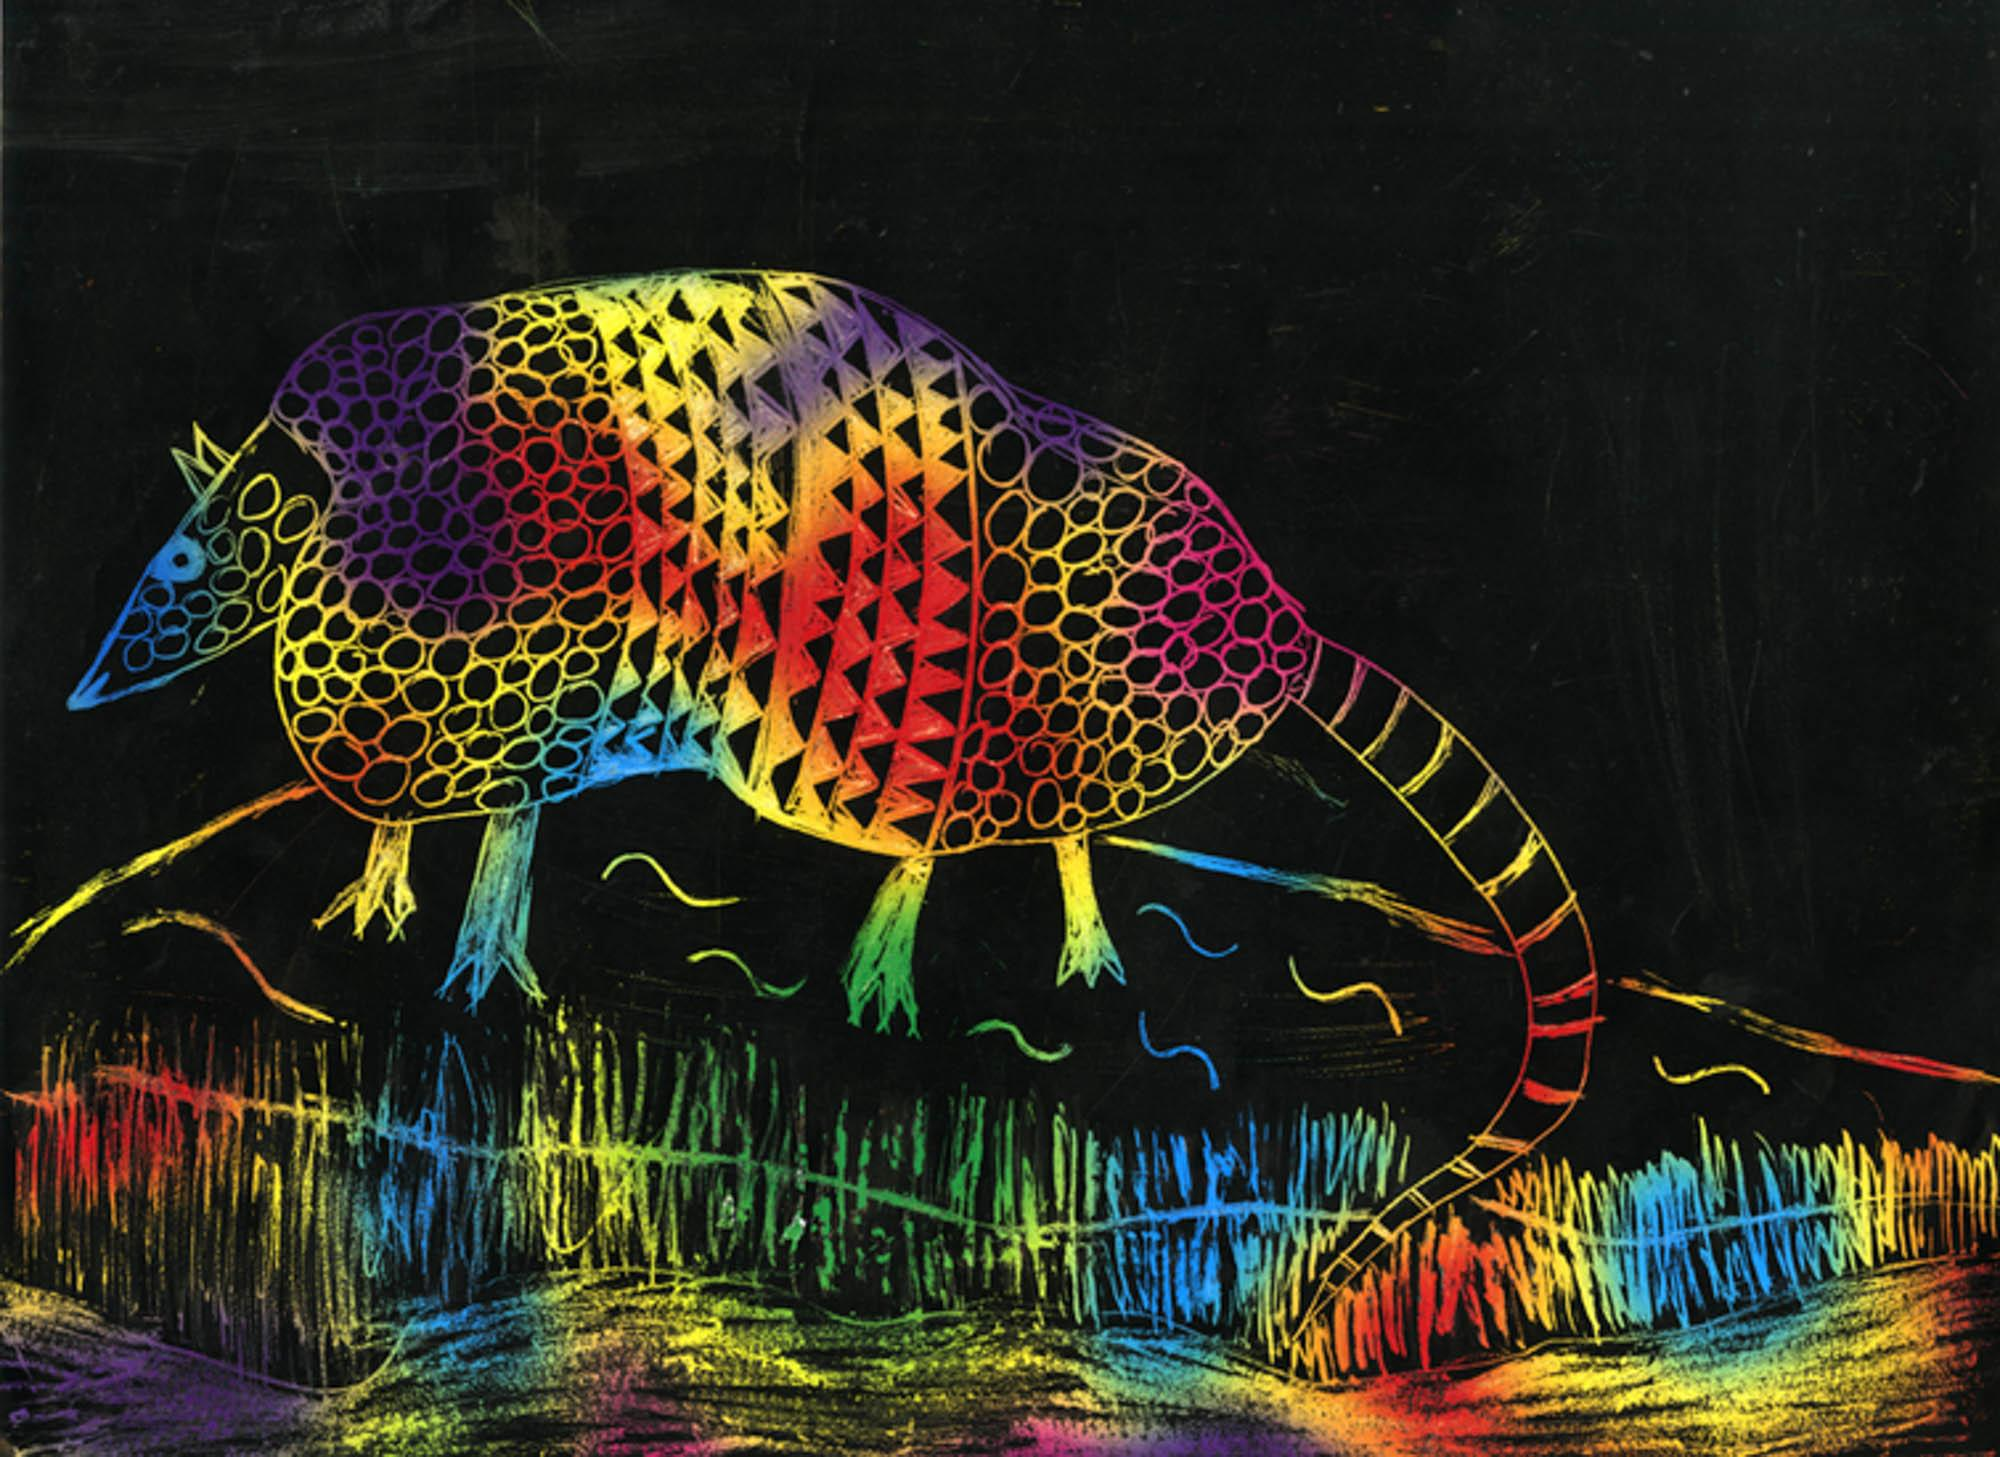 River of an Armadillo, Louisa Hanson, age 8 Atlanta, Georgia Cliff Valley School Teacher: Kathy Peters, 2013 River of Words Finalist